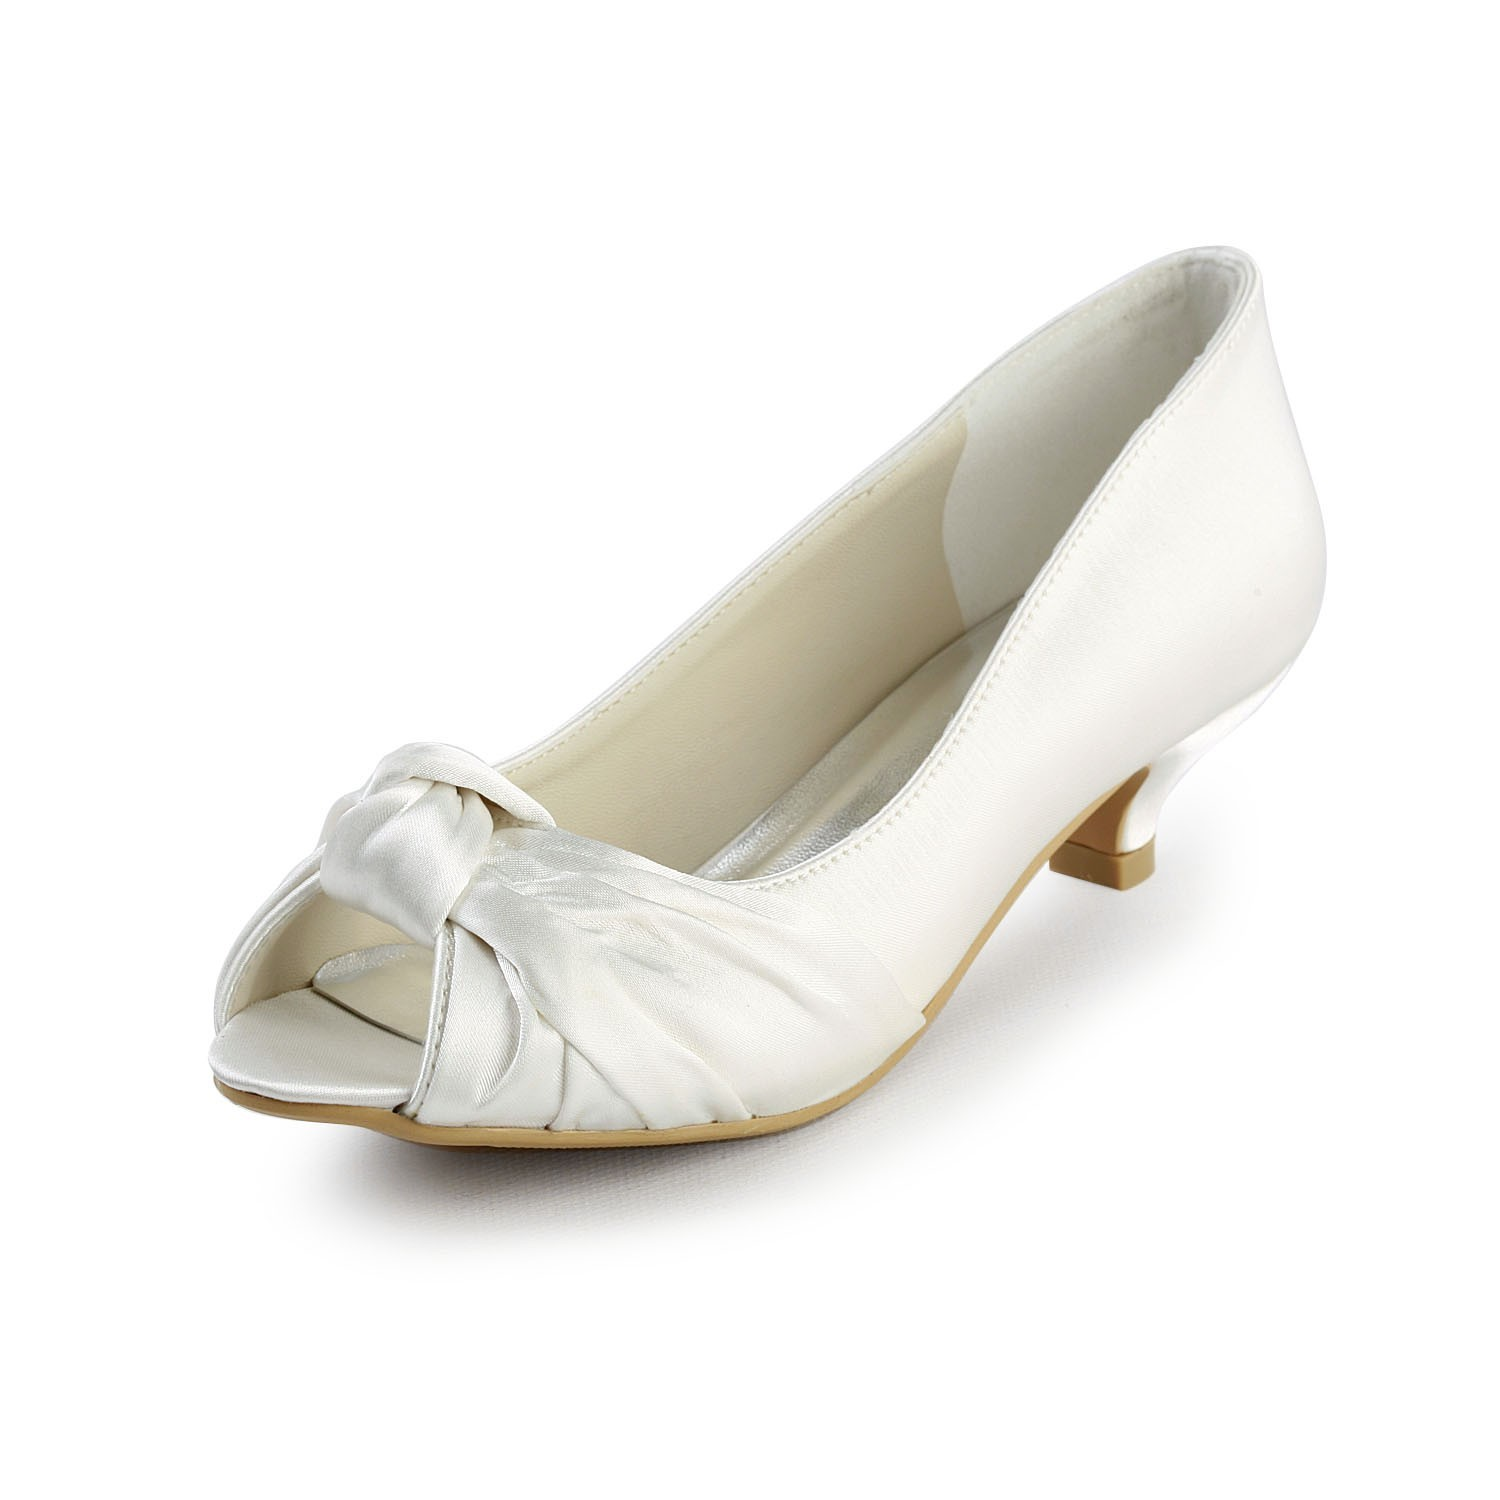 The Most Stylish Women s Satin Kitten Heel Peep Toe Sandals White Wedding  Shoes With Bowknot